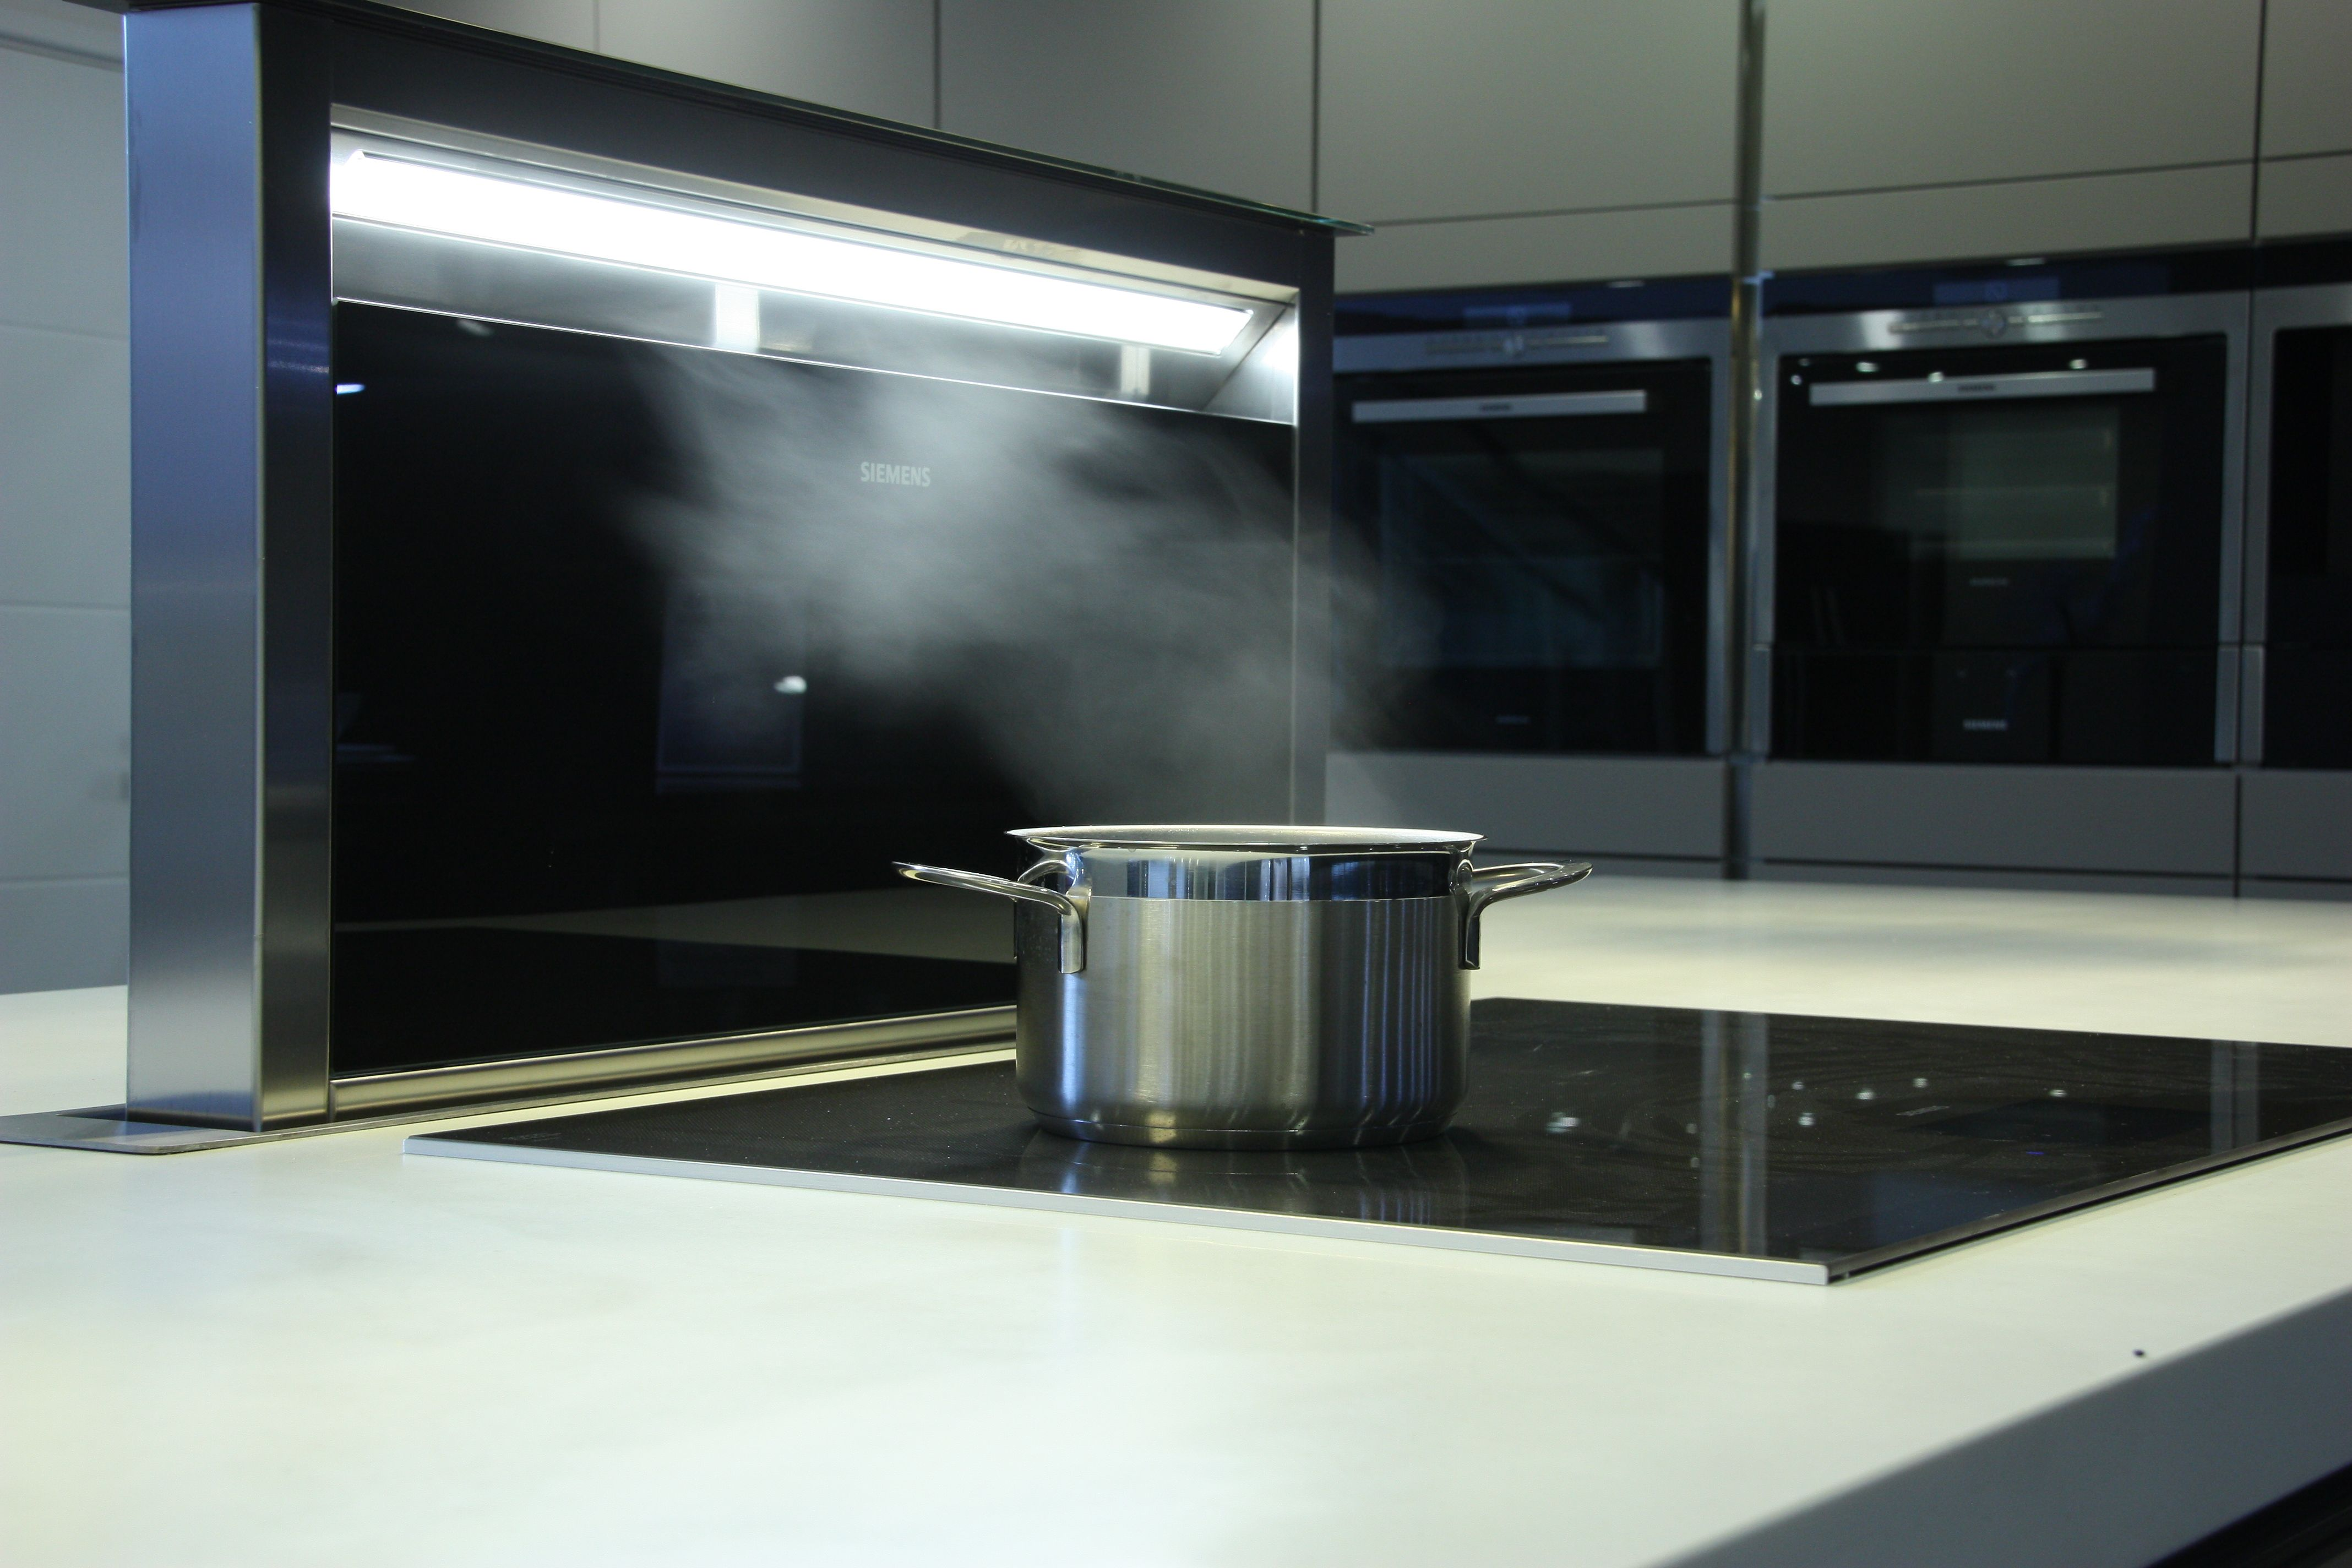 The Siemens Downdraft Extractor now on display at Spillers of Chard Limited